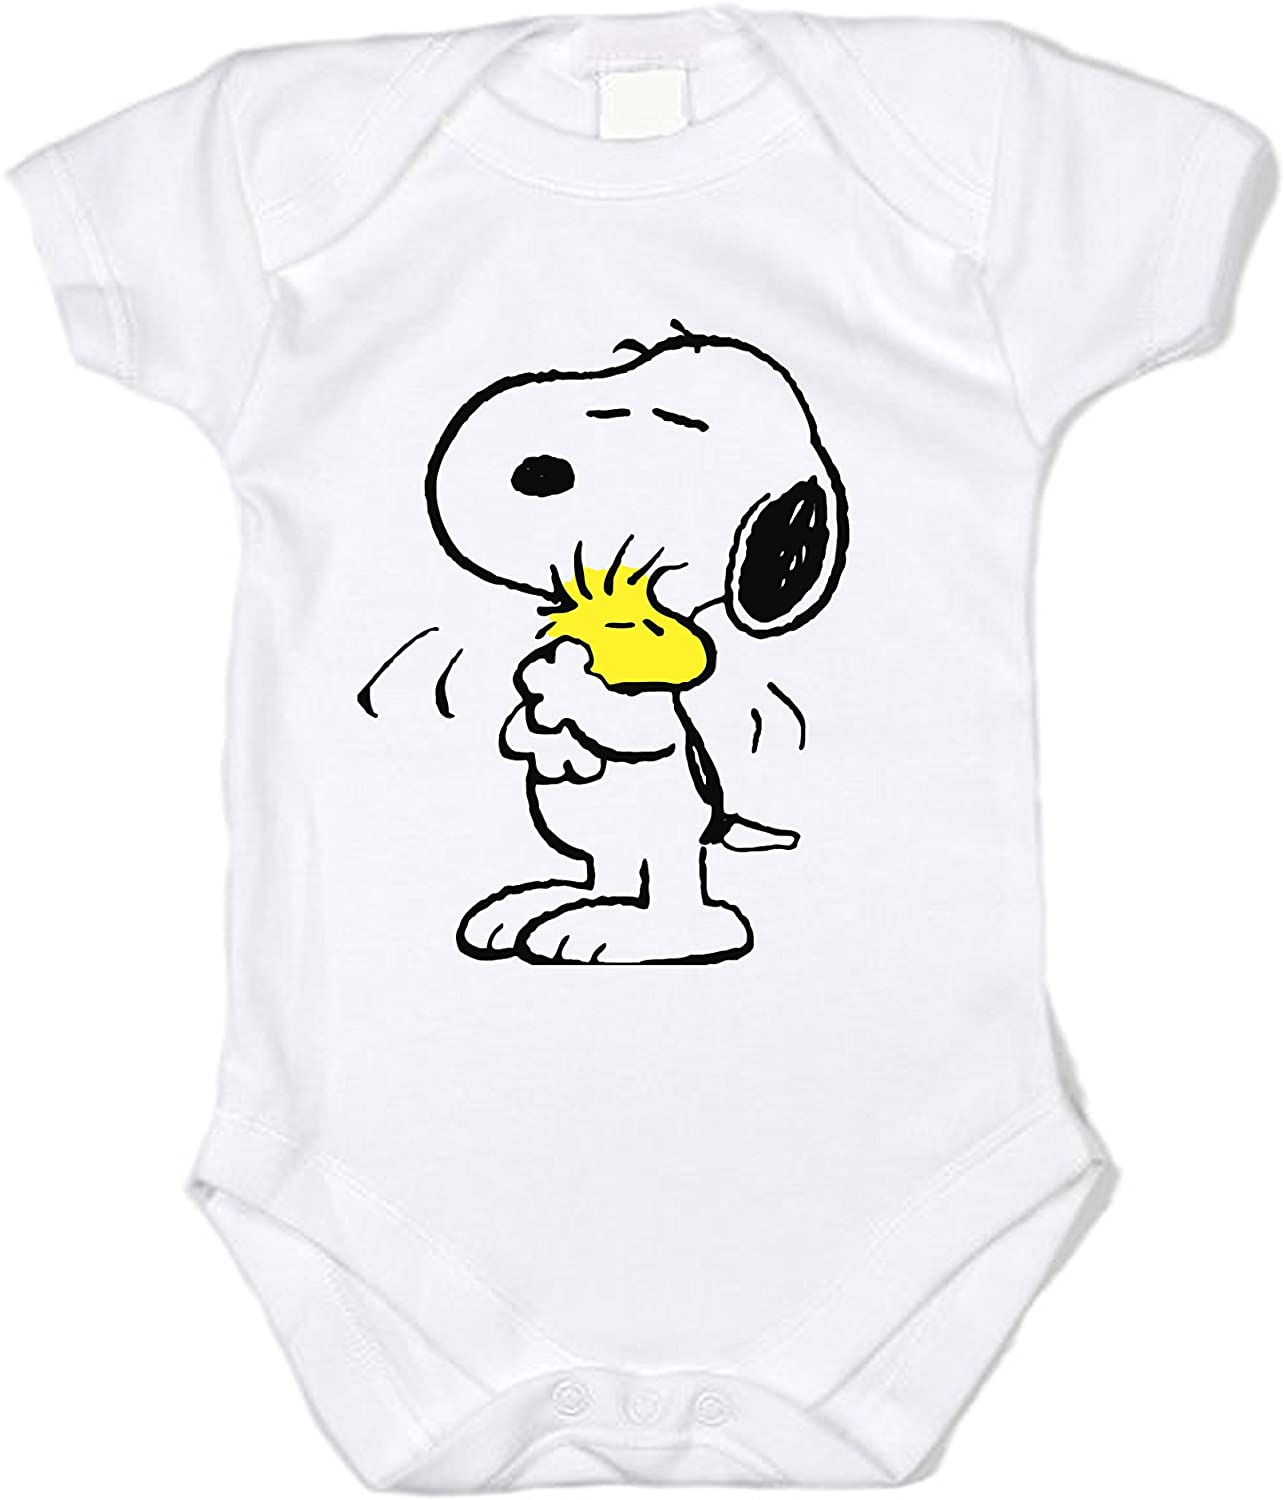 Peanuts Snoopy Classic by Unisex Baby Bodysuit